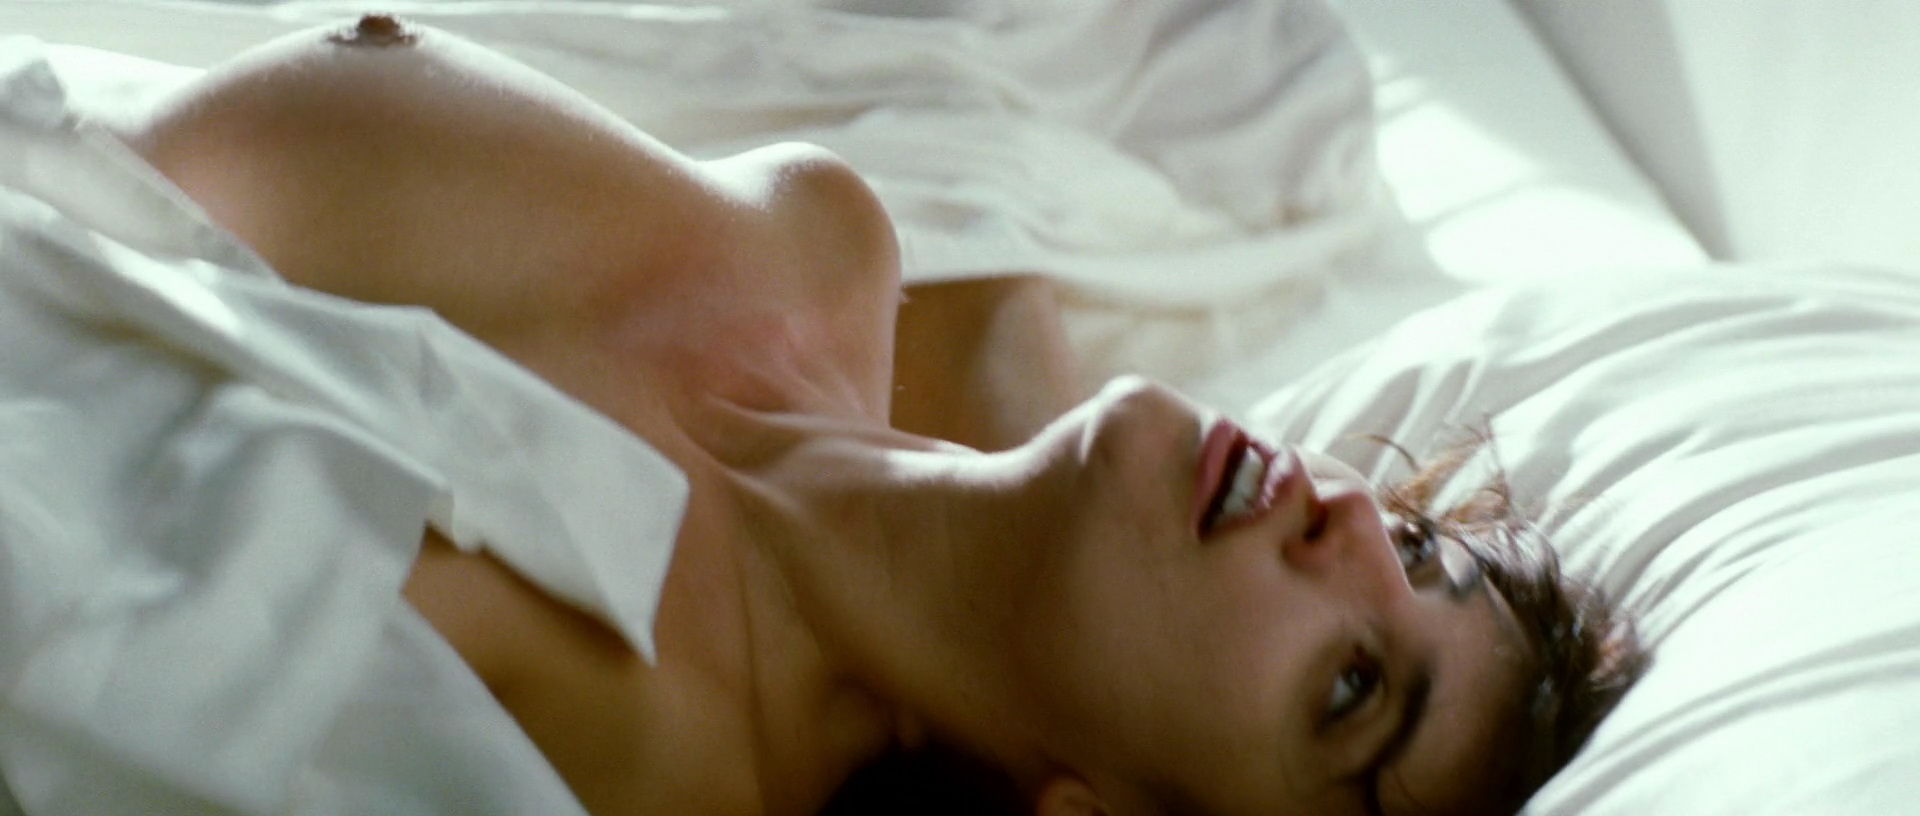 penelope-cruz-having-sex-fuck-me-hard-and-sex-scene